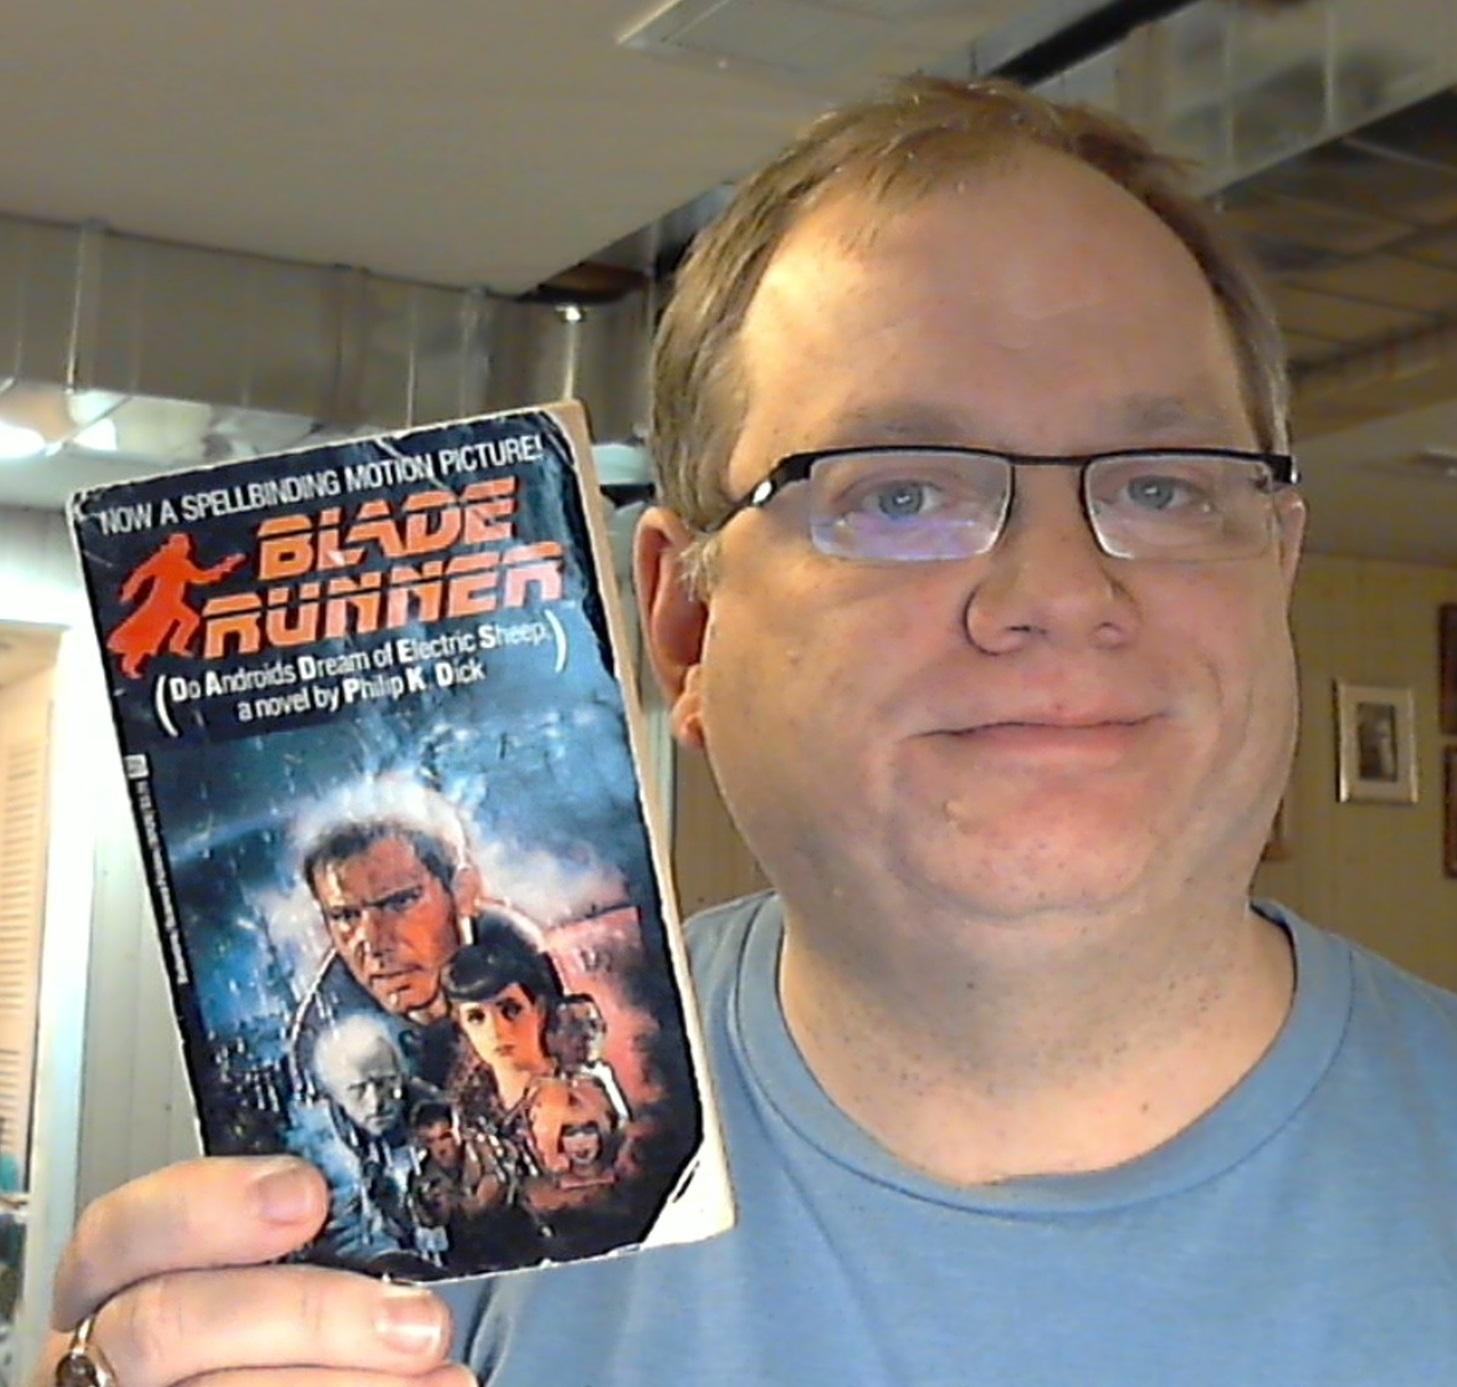 do androids dream of philip k dick a guy d soo posing my 31 year old beat up copy of blade runner in paperback